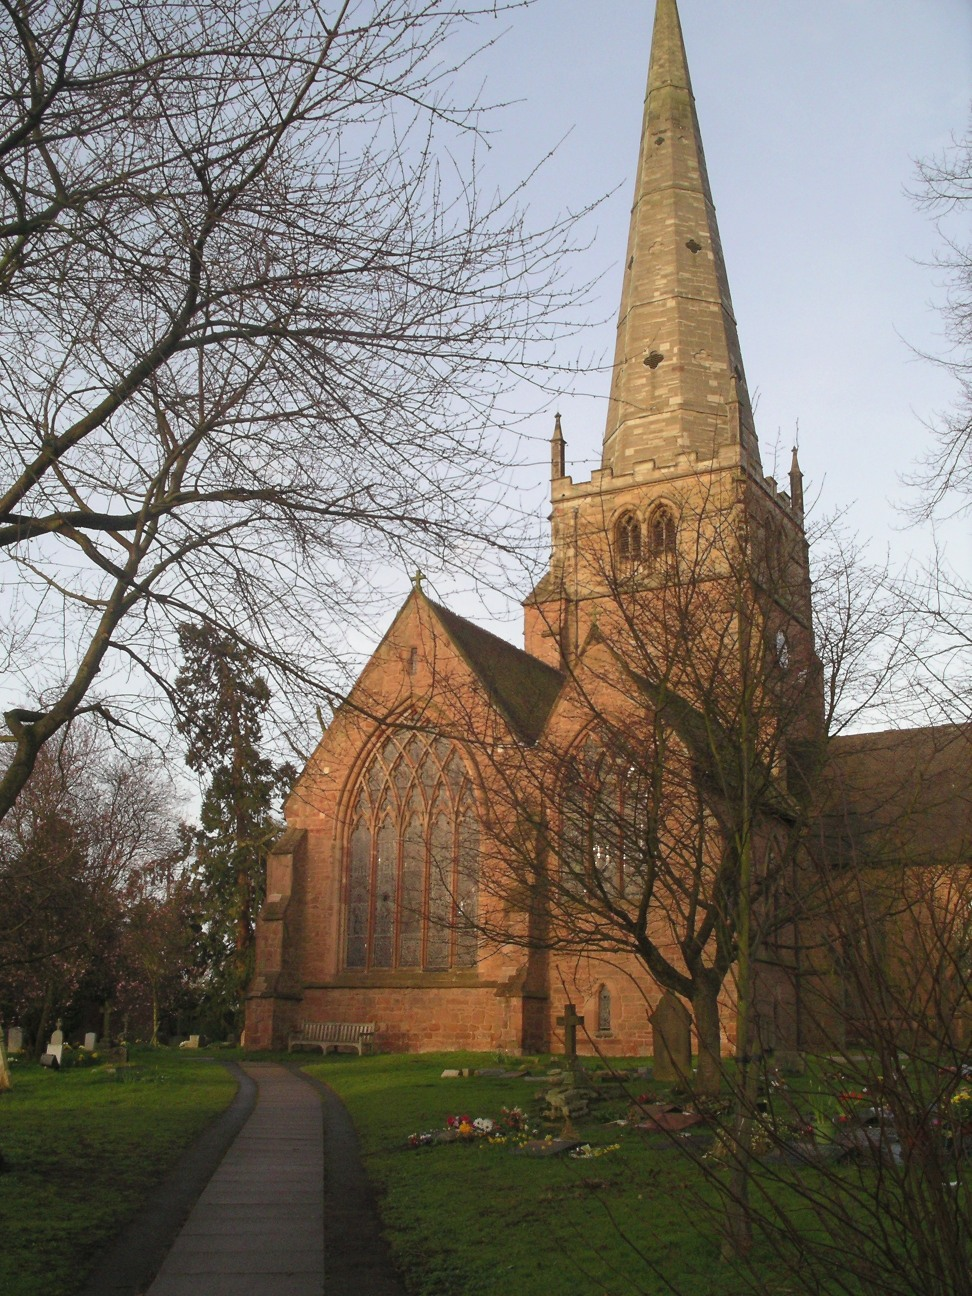 http://commons.wikipedia.org/wiki/File:St_Alphege_Church_Solihull.jpg